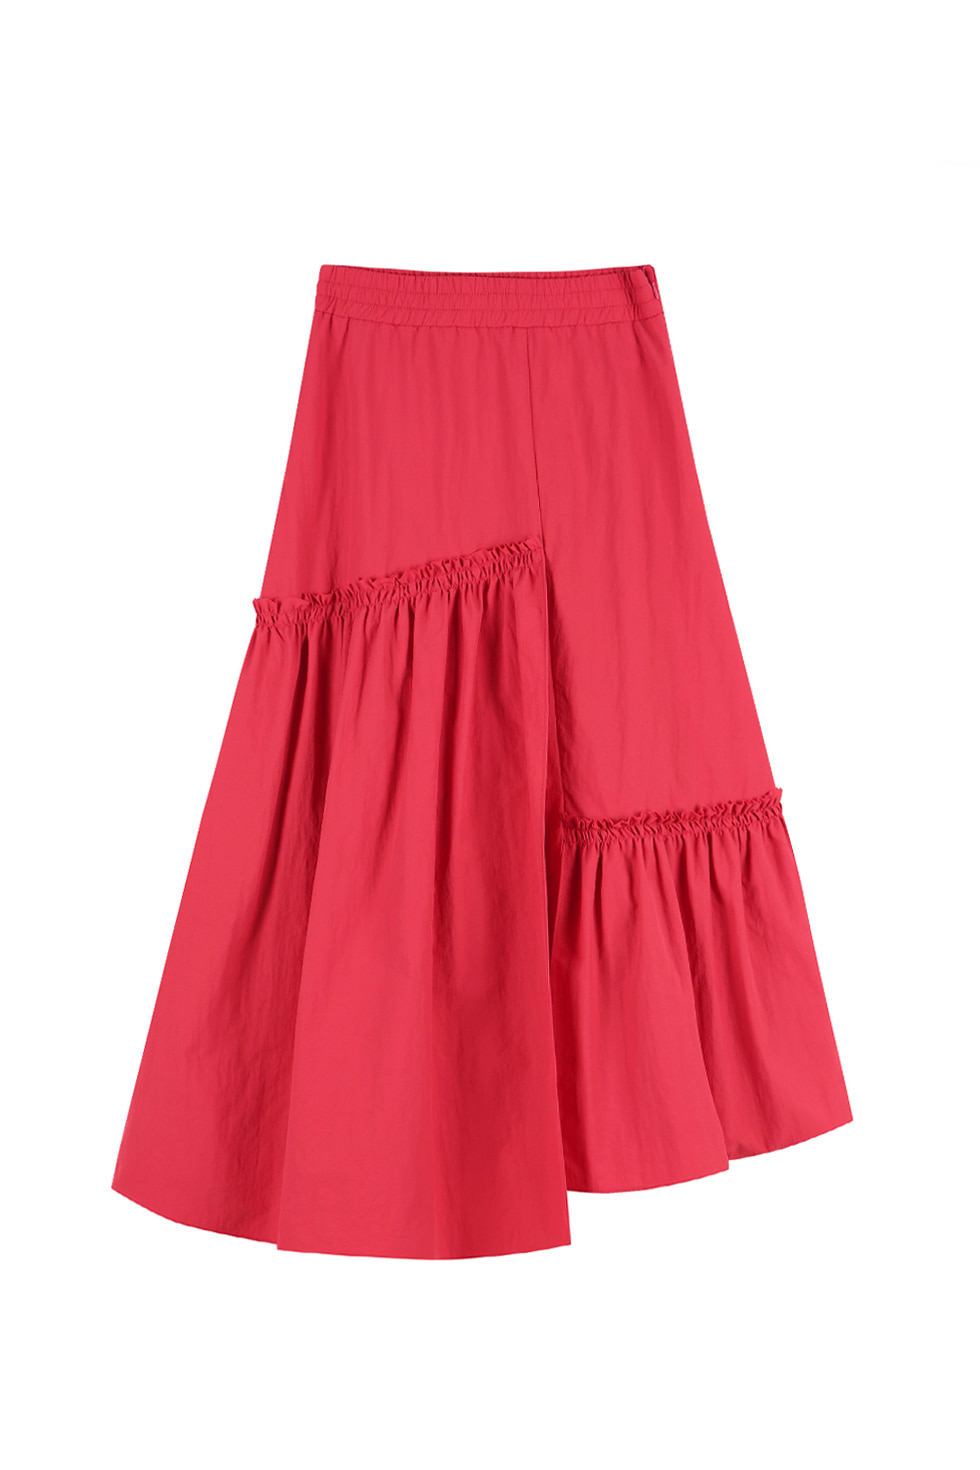 UNBALANCED RUFFLE SKIRT - RED